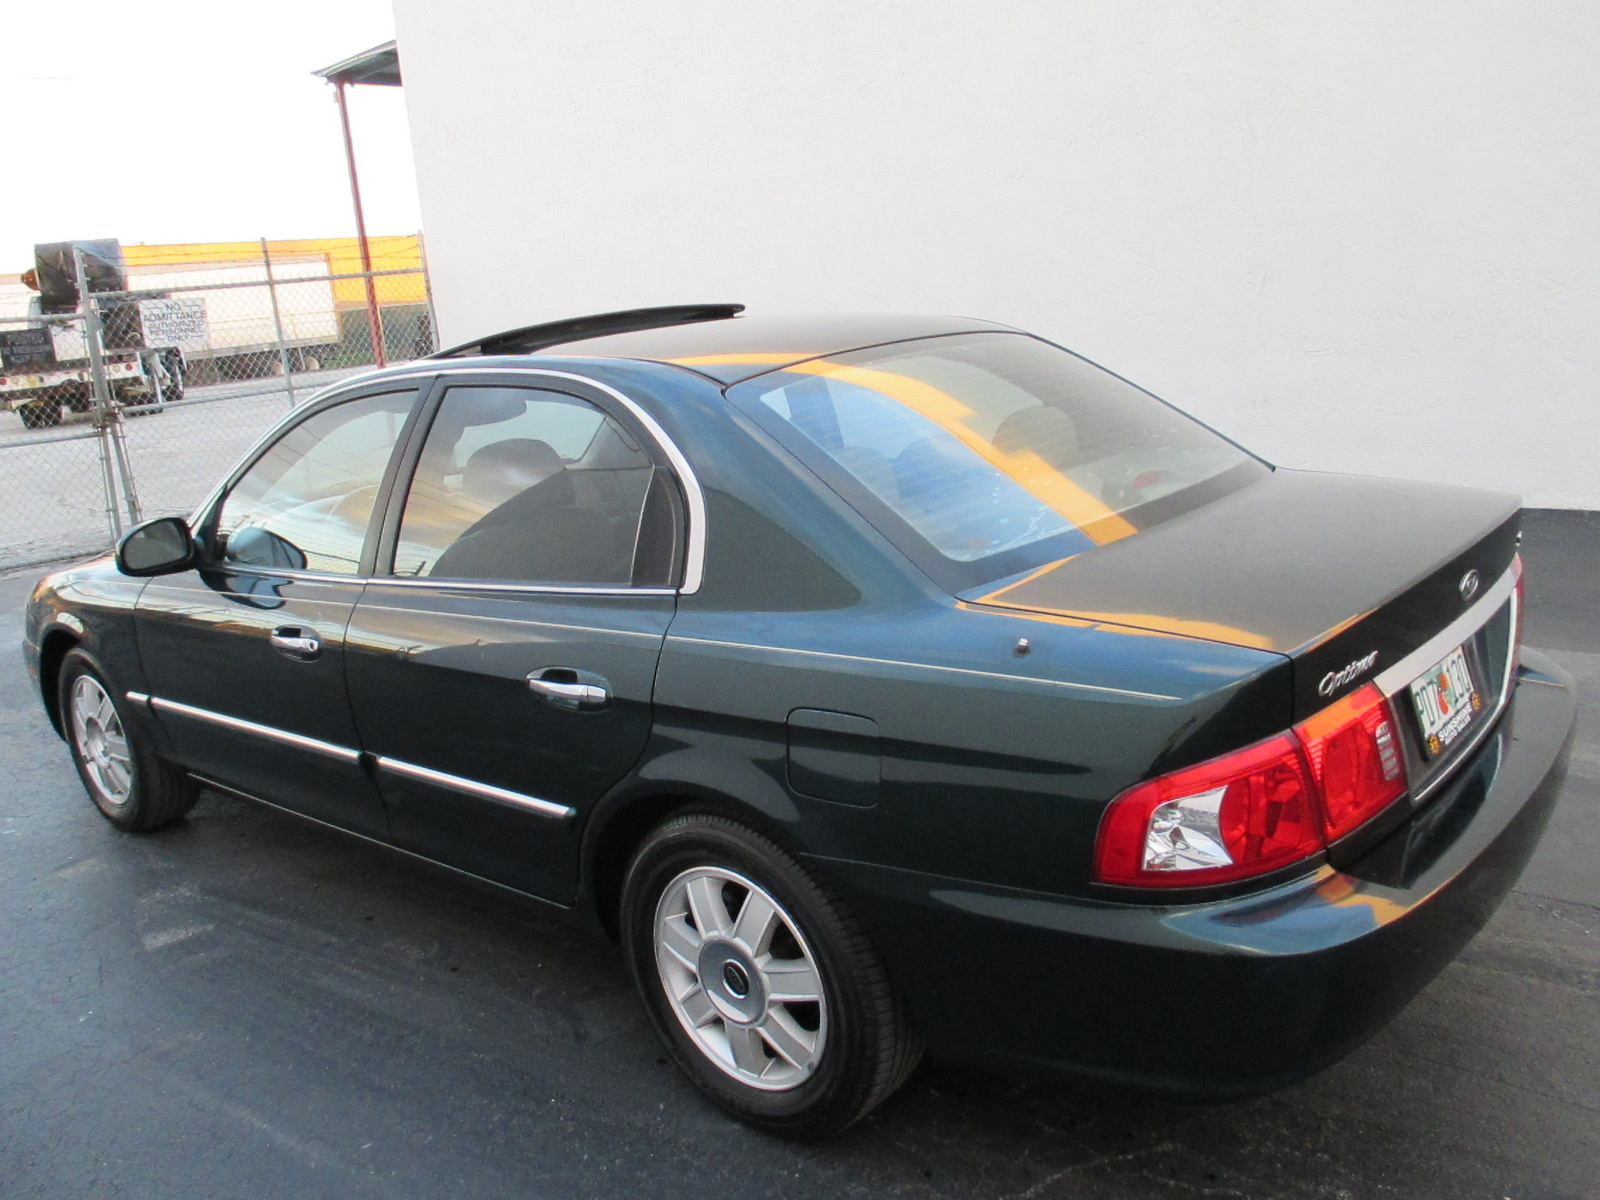 Kia Optima 2.0 2003 photo - 5